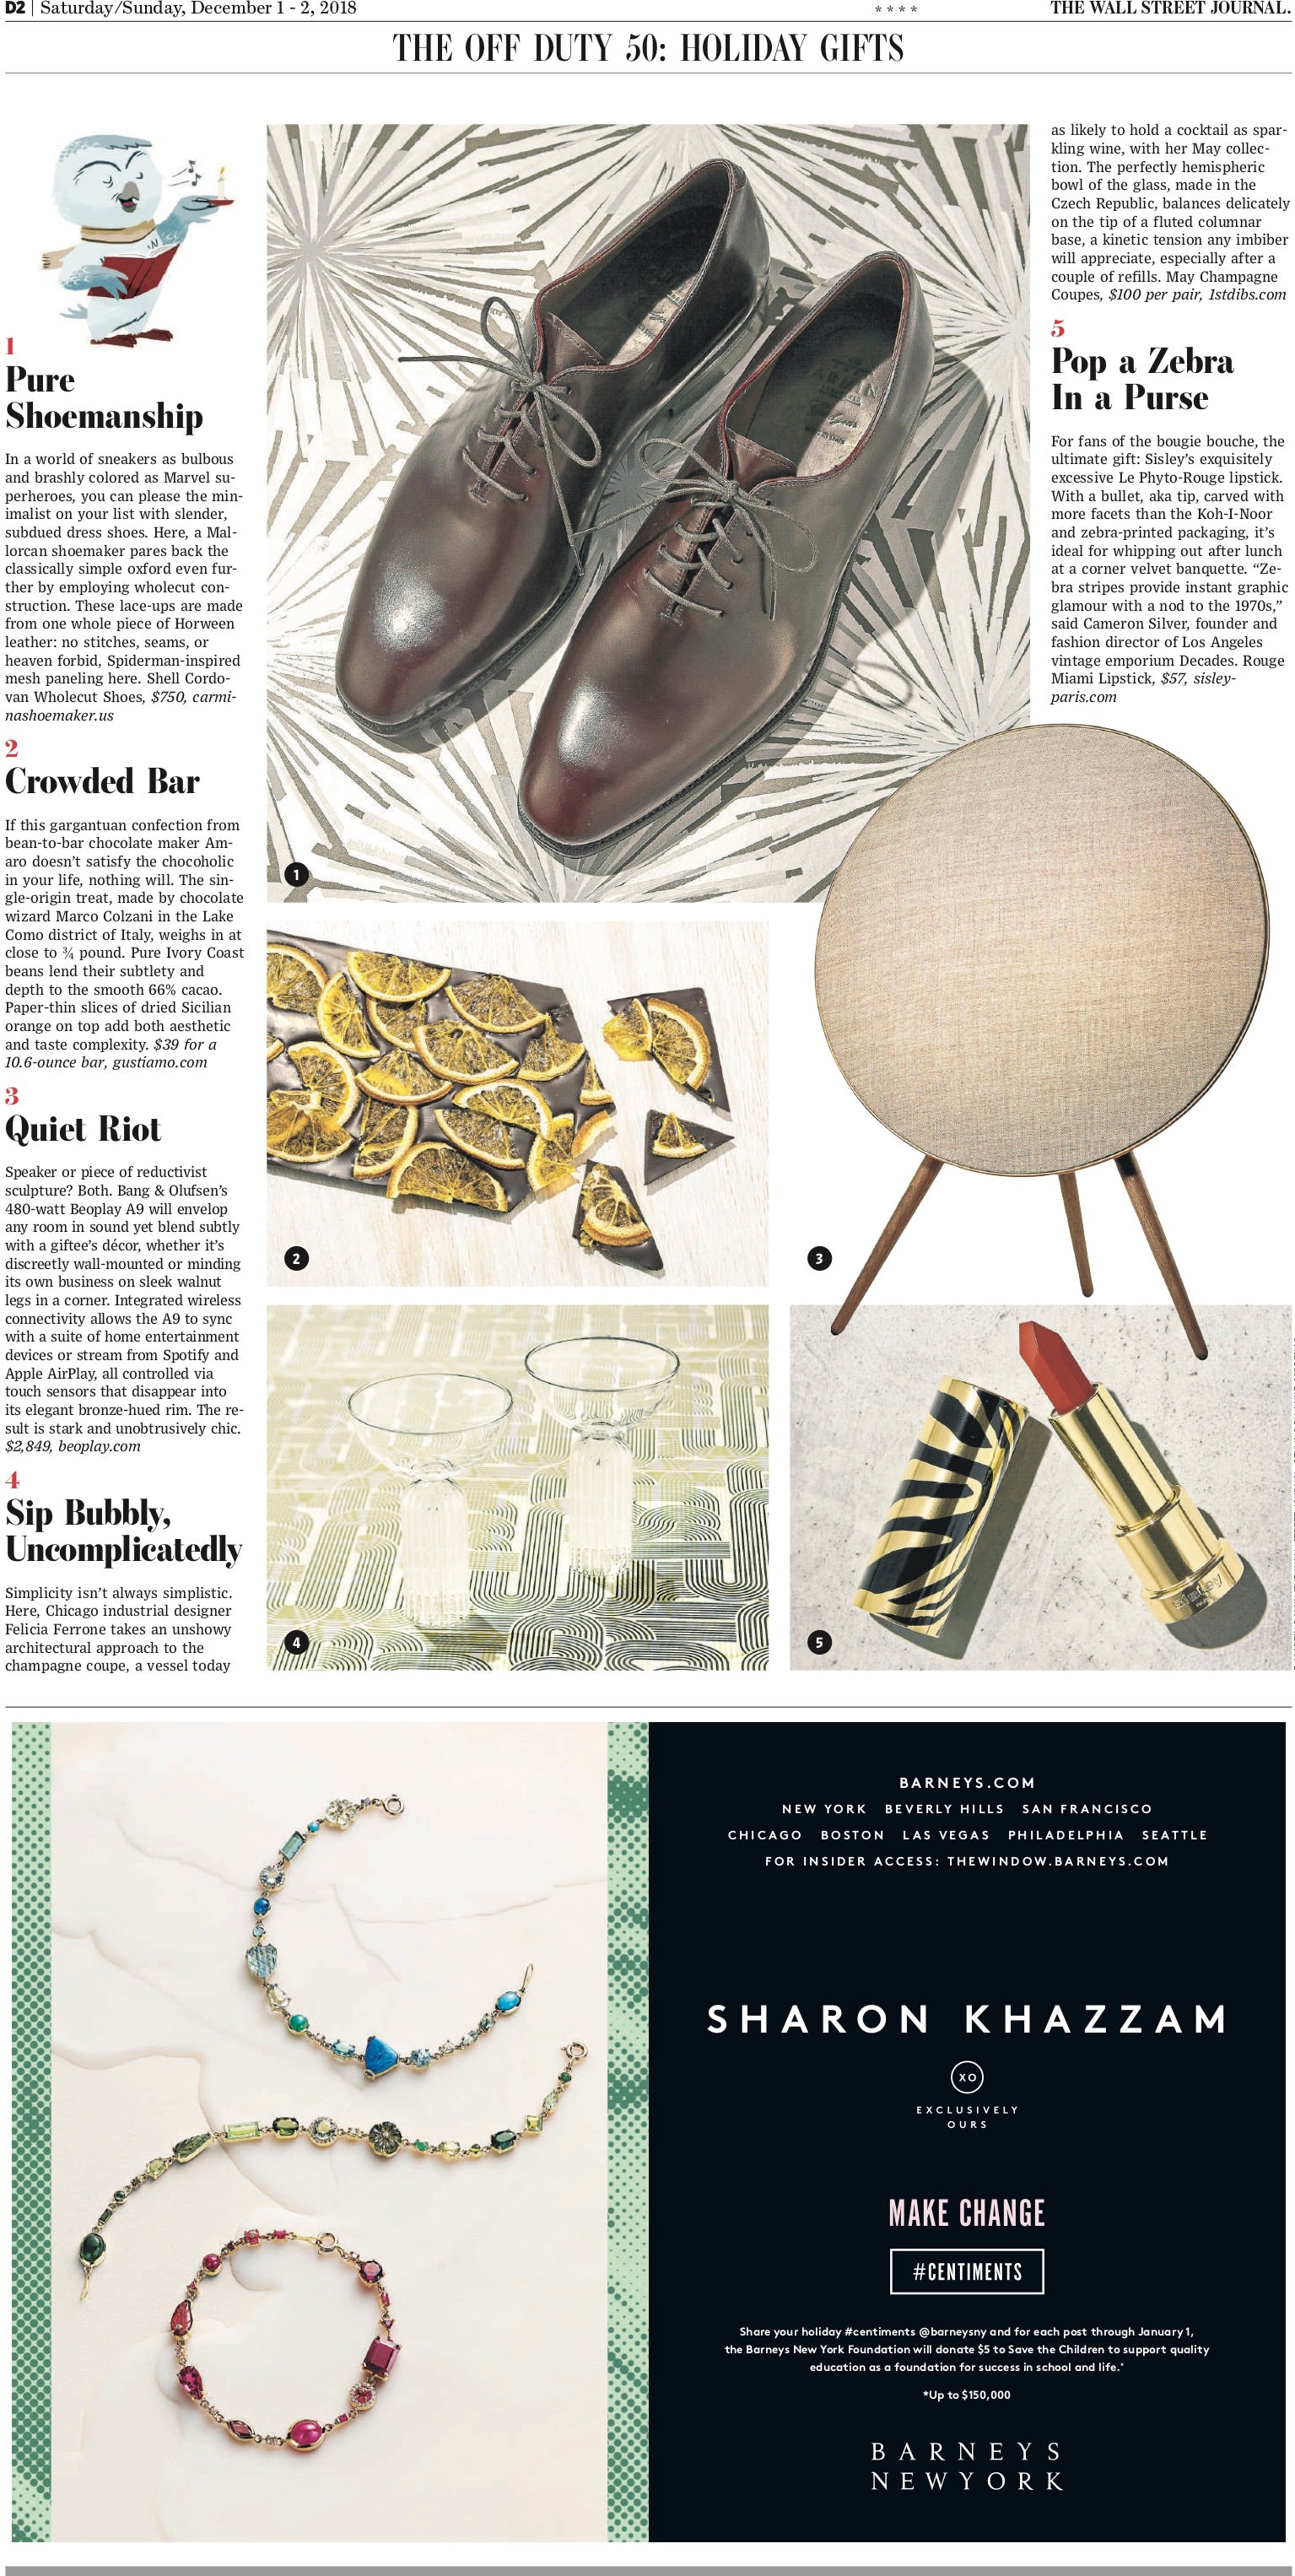 May Coupe gift guide wall street journal